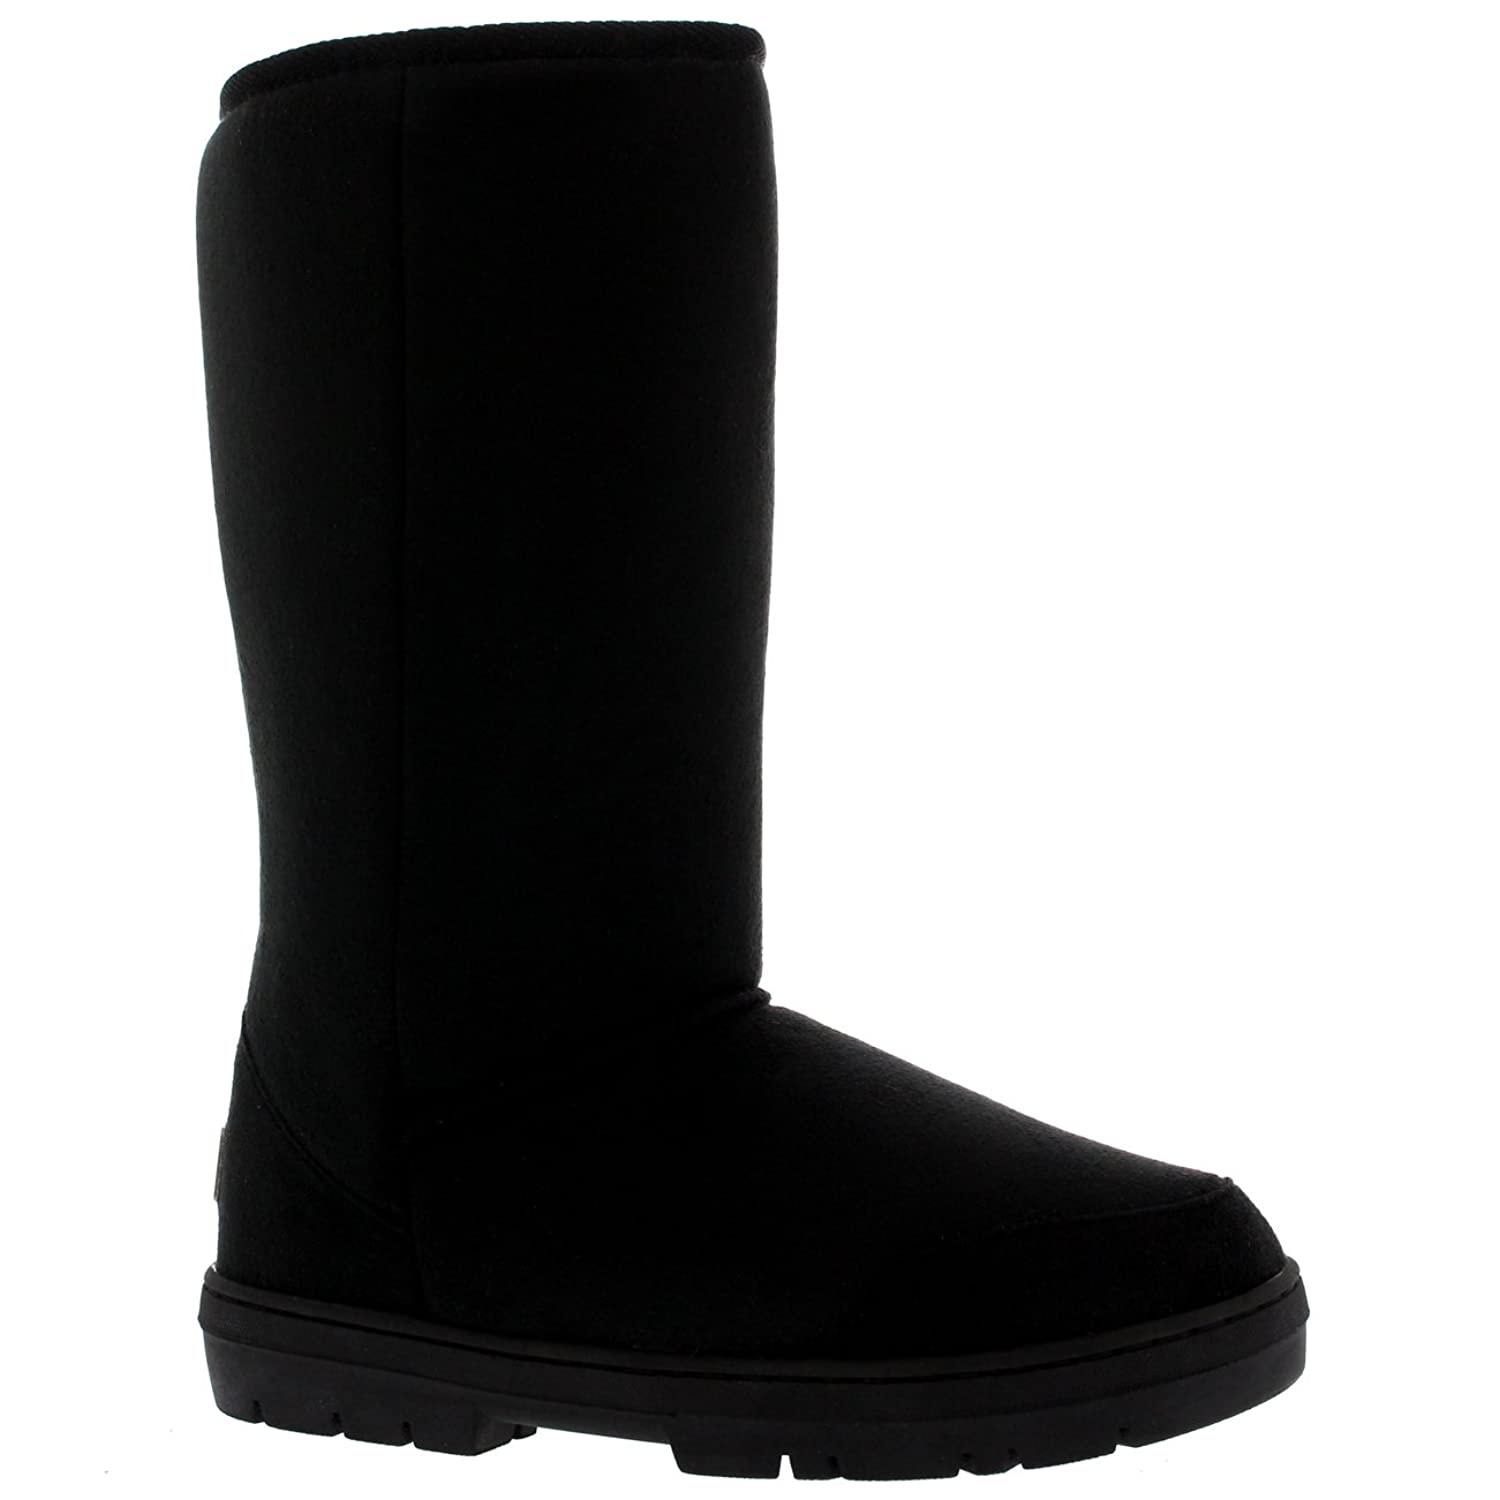 Mujer Original Short Classic Fur Lined Impermeable Invierno Rain Nieve Botas - Negro - 41 6T1fxPt5an